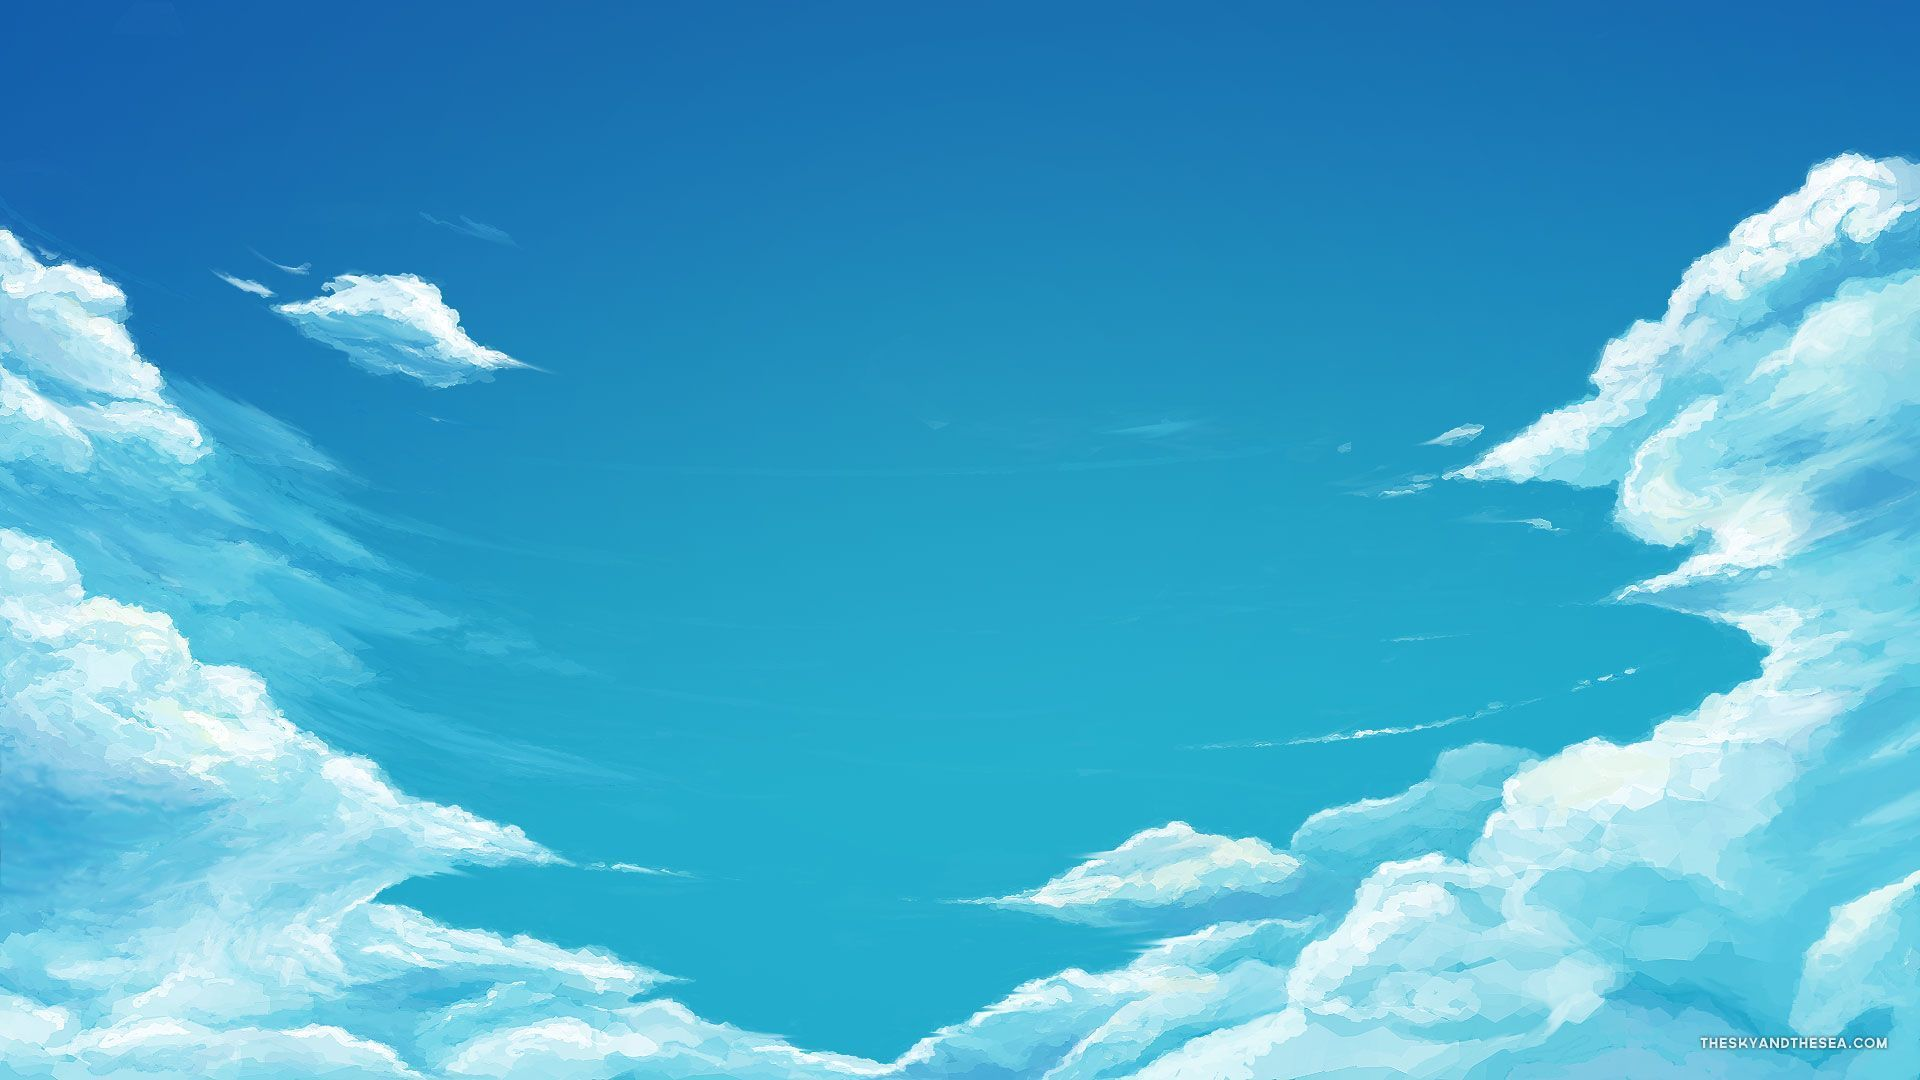 1080p Hd Wallpapers Pemandangan Anime Pemandangan Langit